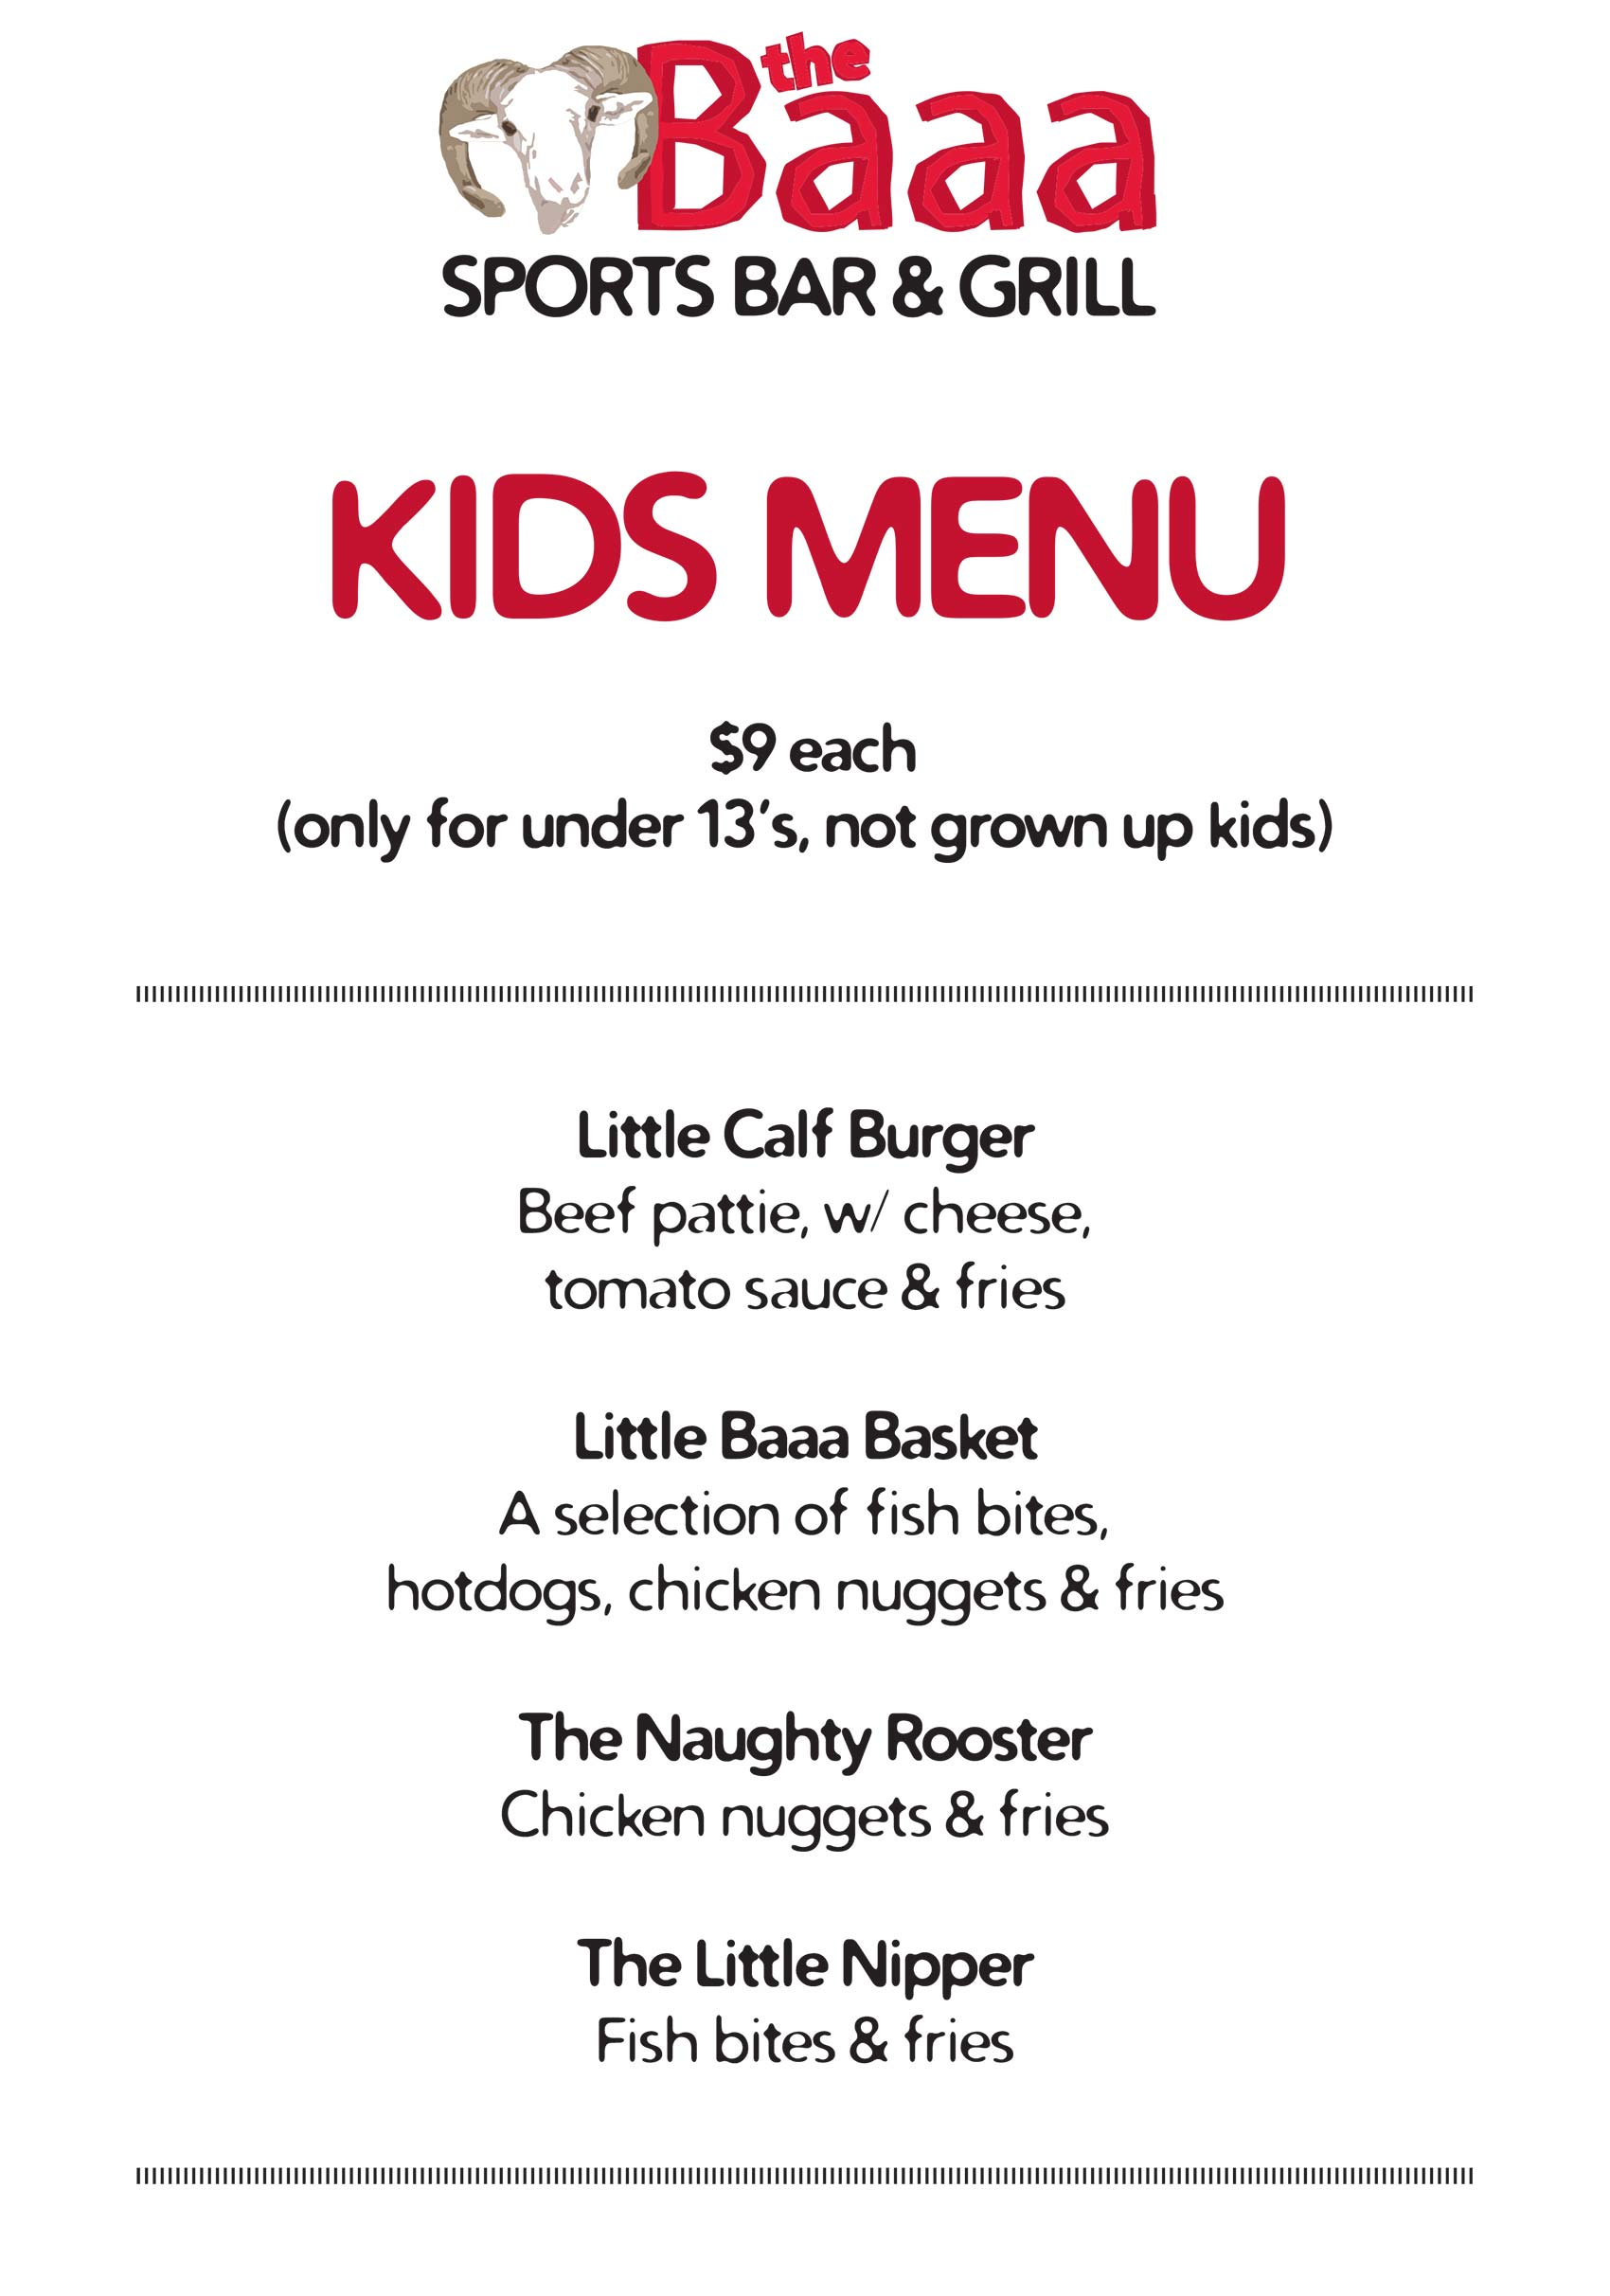 Kids Menu 2020, The Baaa Sports Bar and Grill, 746 Great King Street, Dunedin 03 477 7718